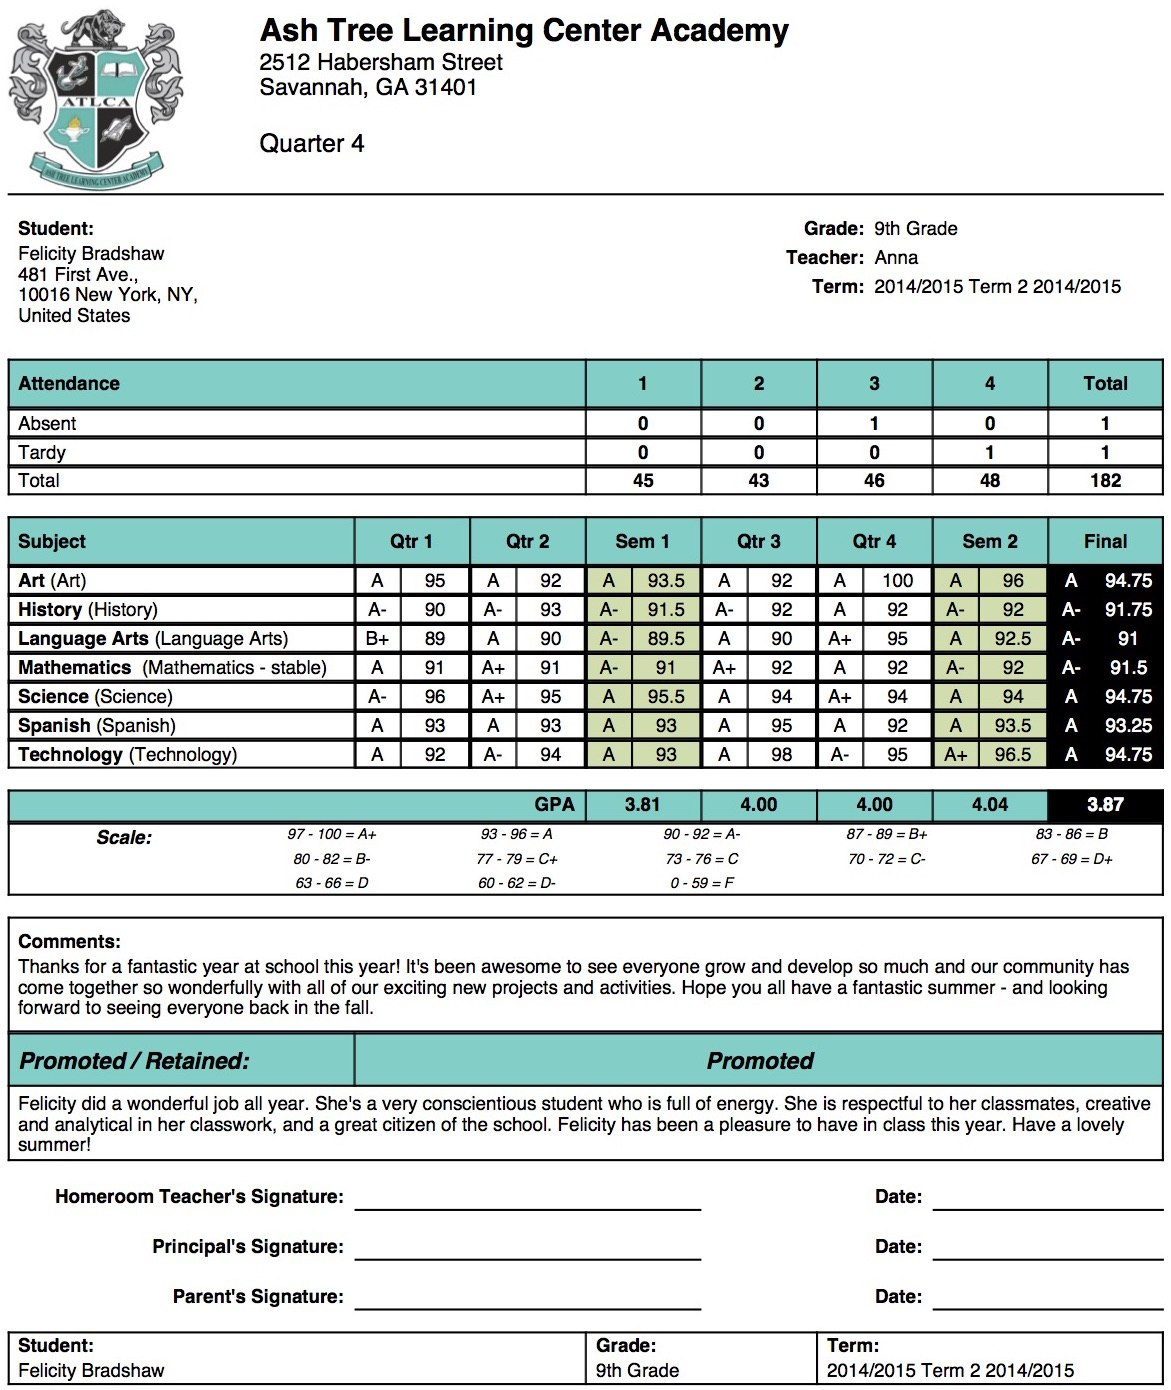 Ash Tree Learning Center Academy Report Card Template  School Within Middle School Report Card Template